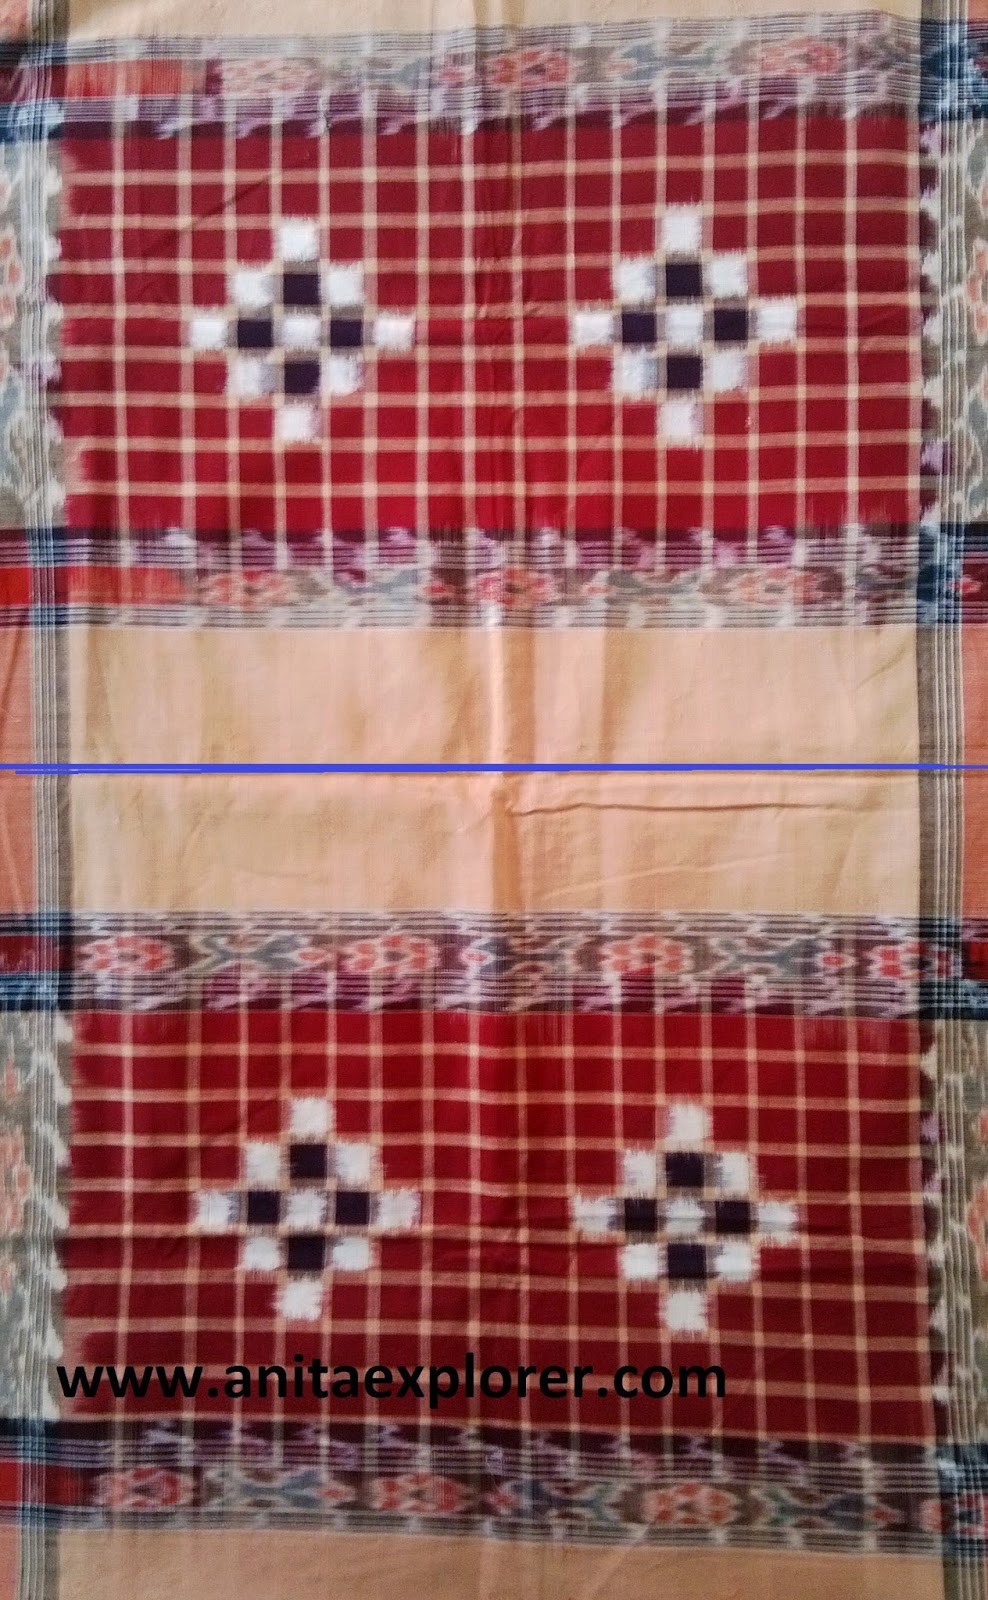 Sambalpuri-Products-Pillow-Covers